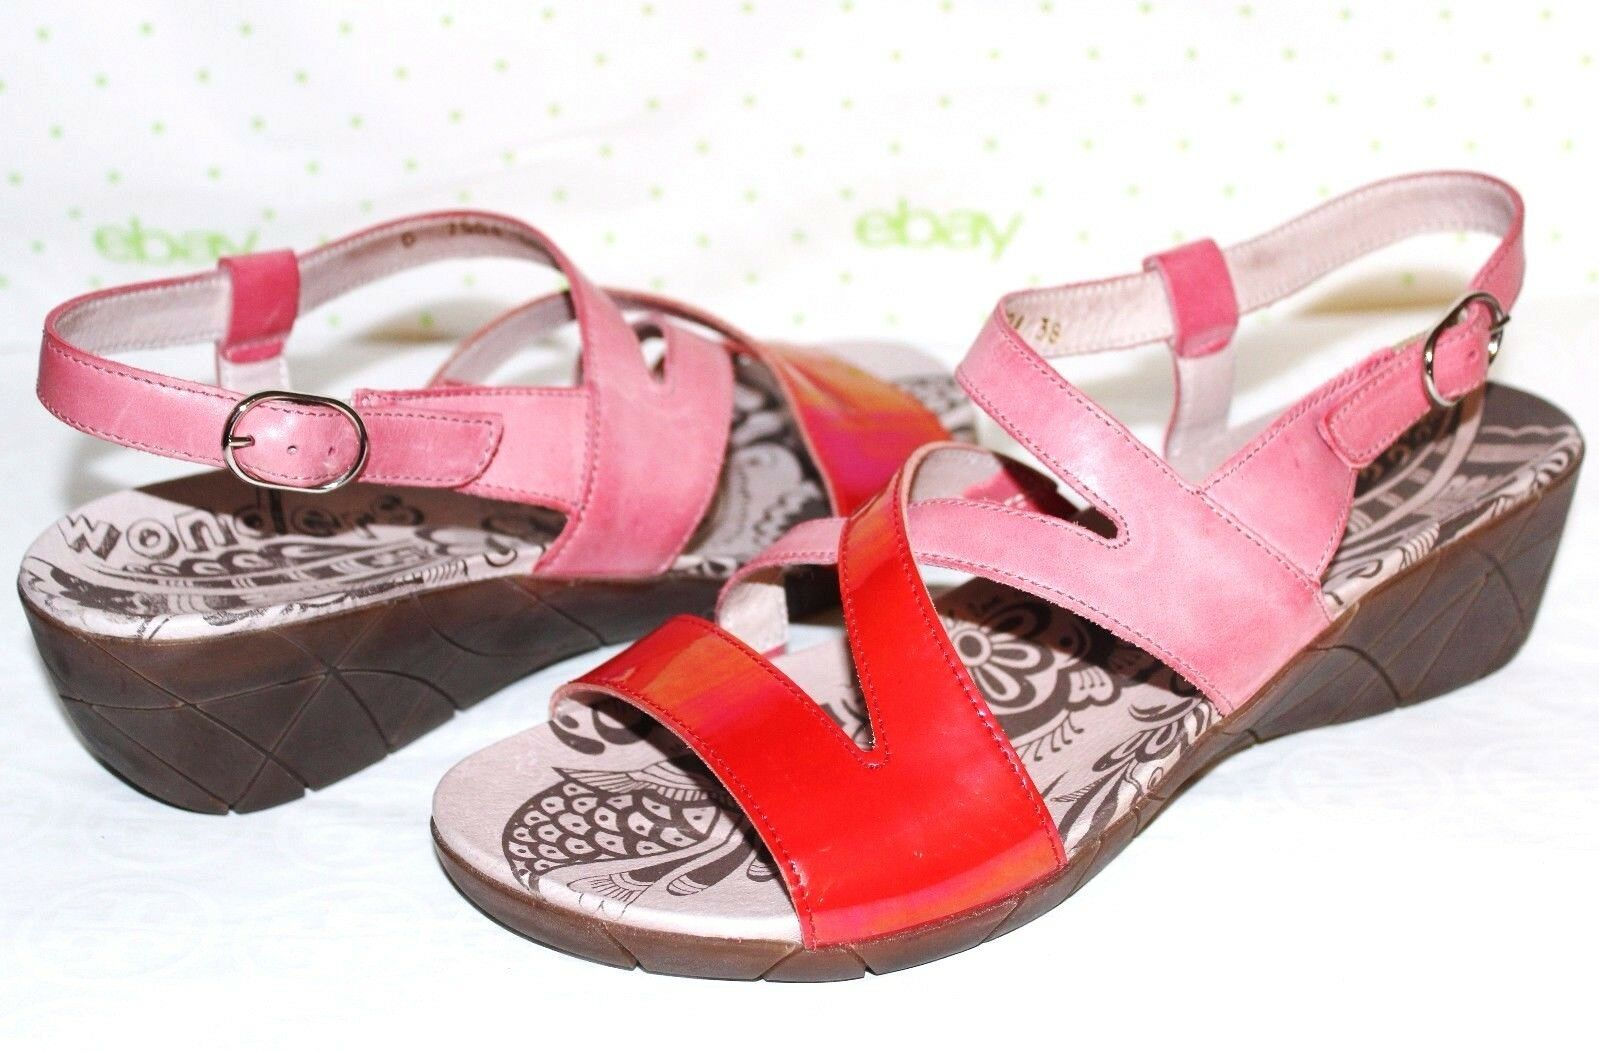 WONDERS Spain Patent Papaya Antiqued-Pink Leather Wedges 10.5 M 41 NEW  L@@K 23